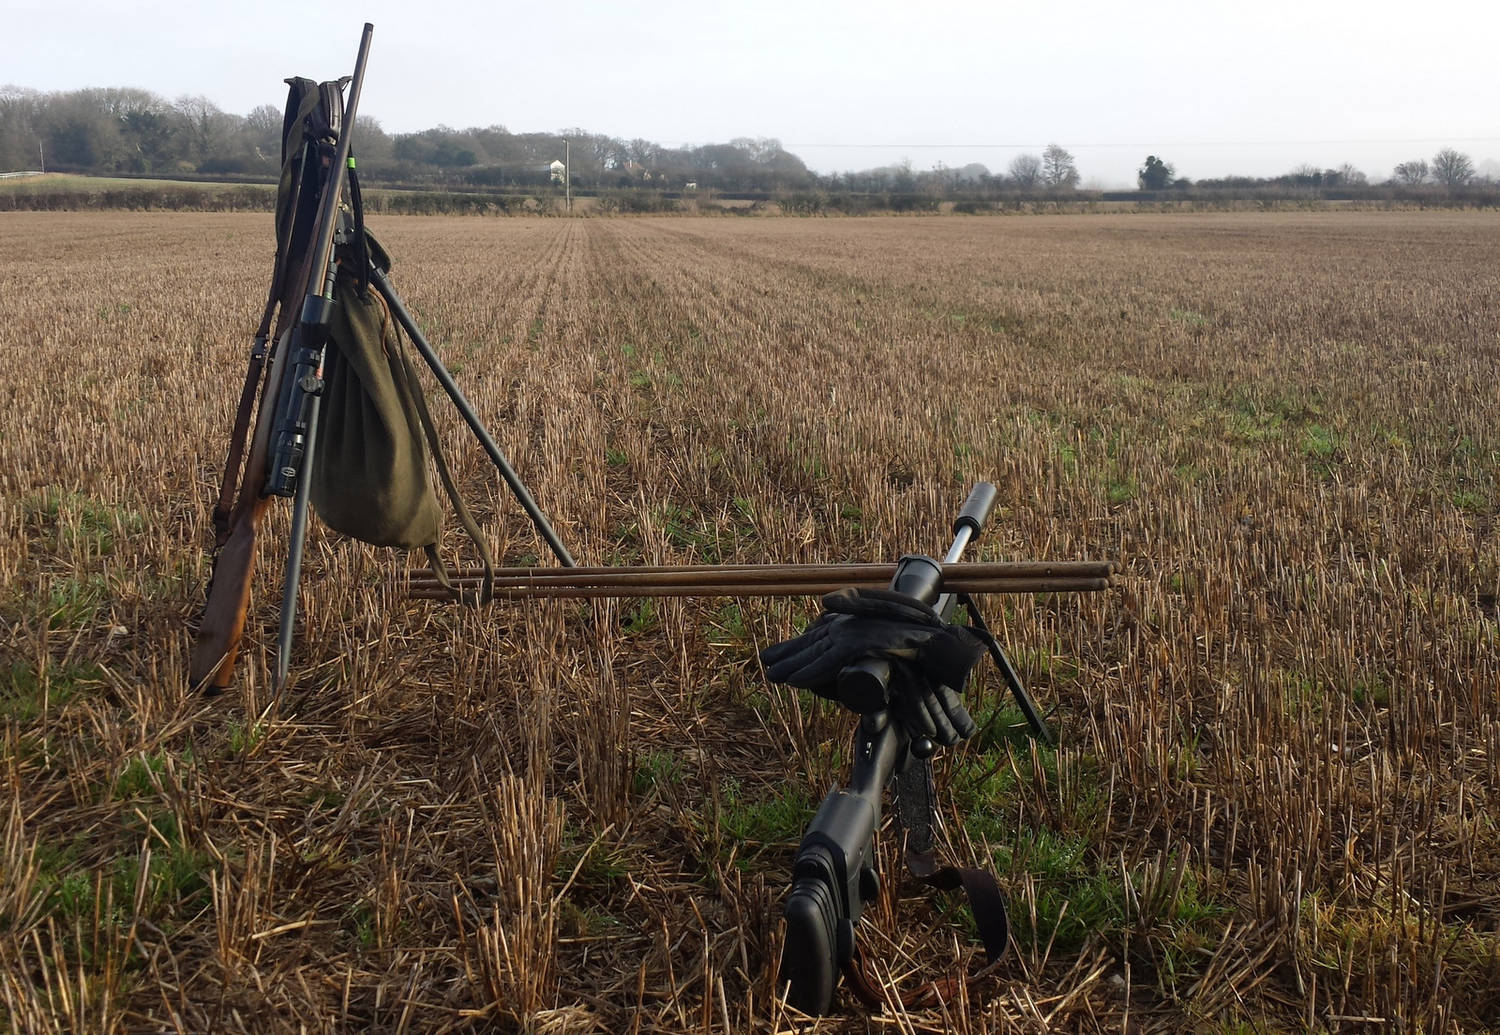 A photograph of shooting sticks in a field